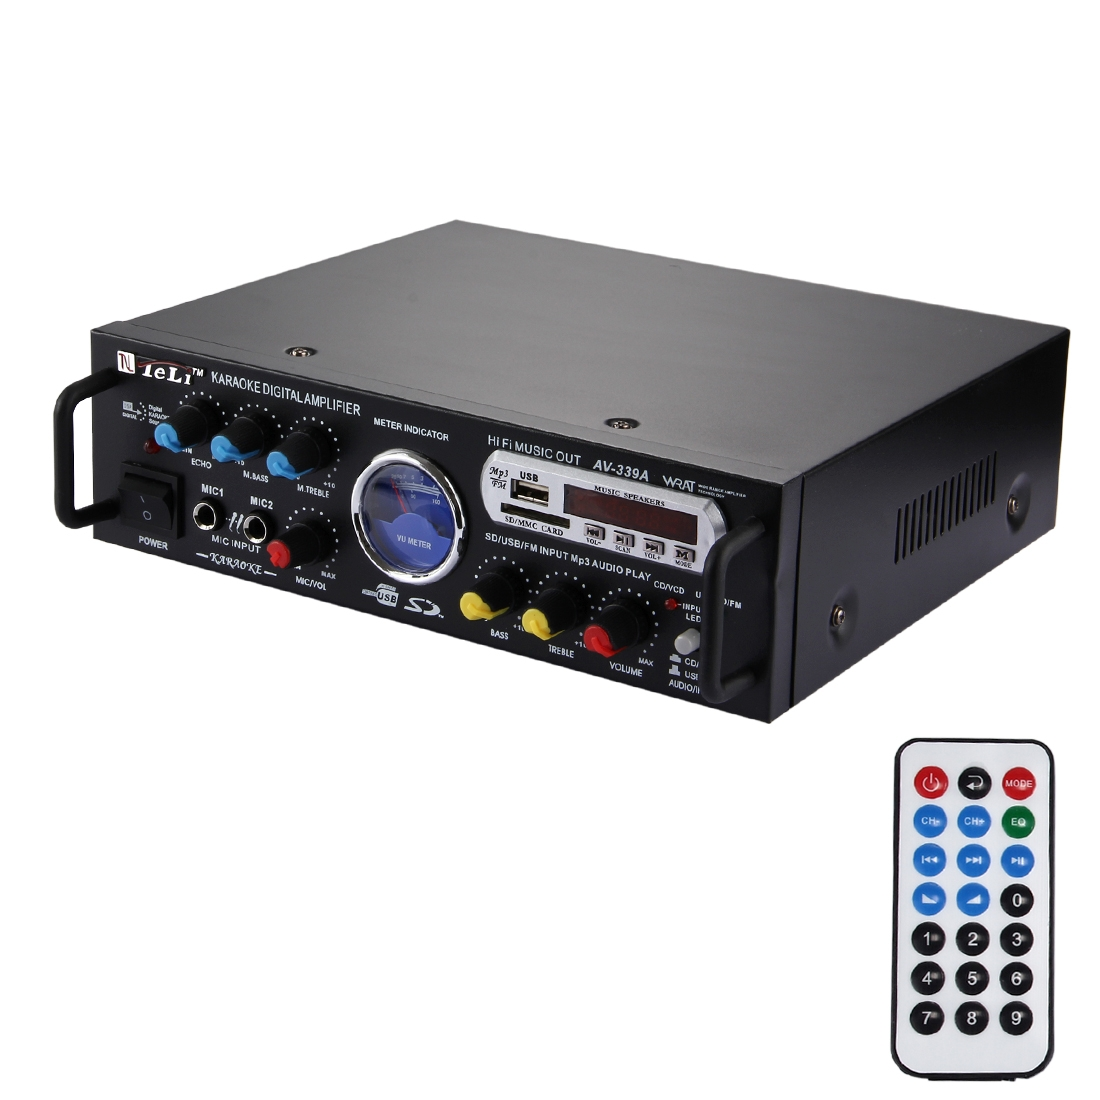 AV-339A 2CH HiFi Stereo Audio Amplifier with Remote Control, Support FM / SD / MP3 Player / USB / Display / Meter Indicator, AC 220V / DC 12V